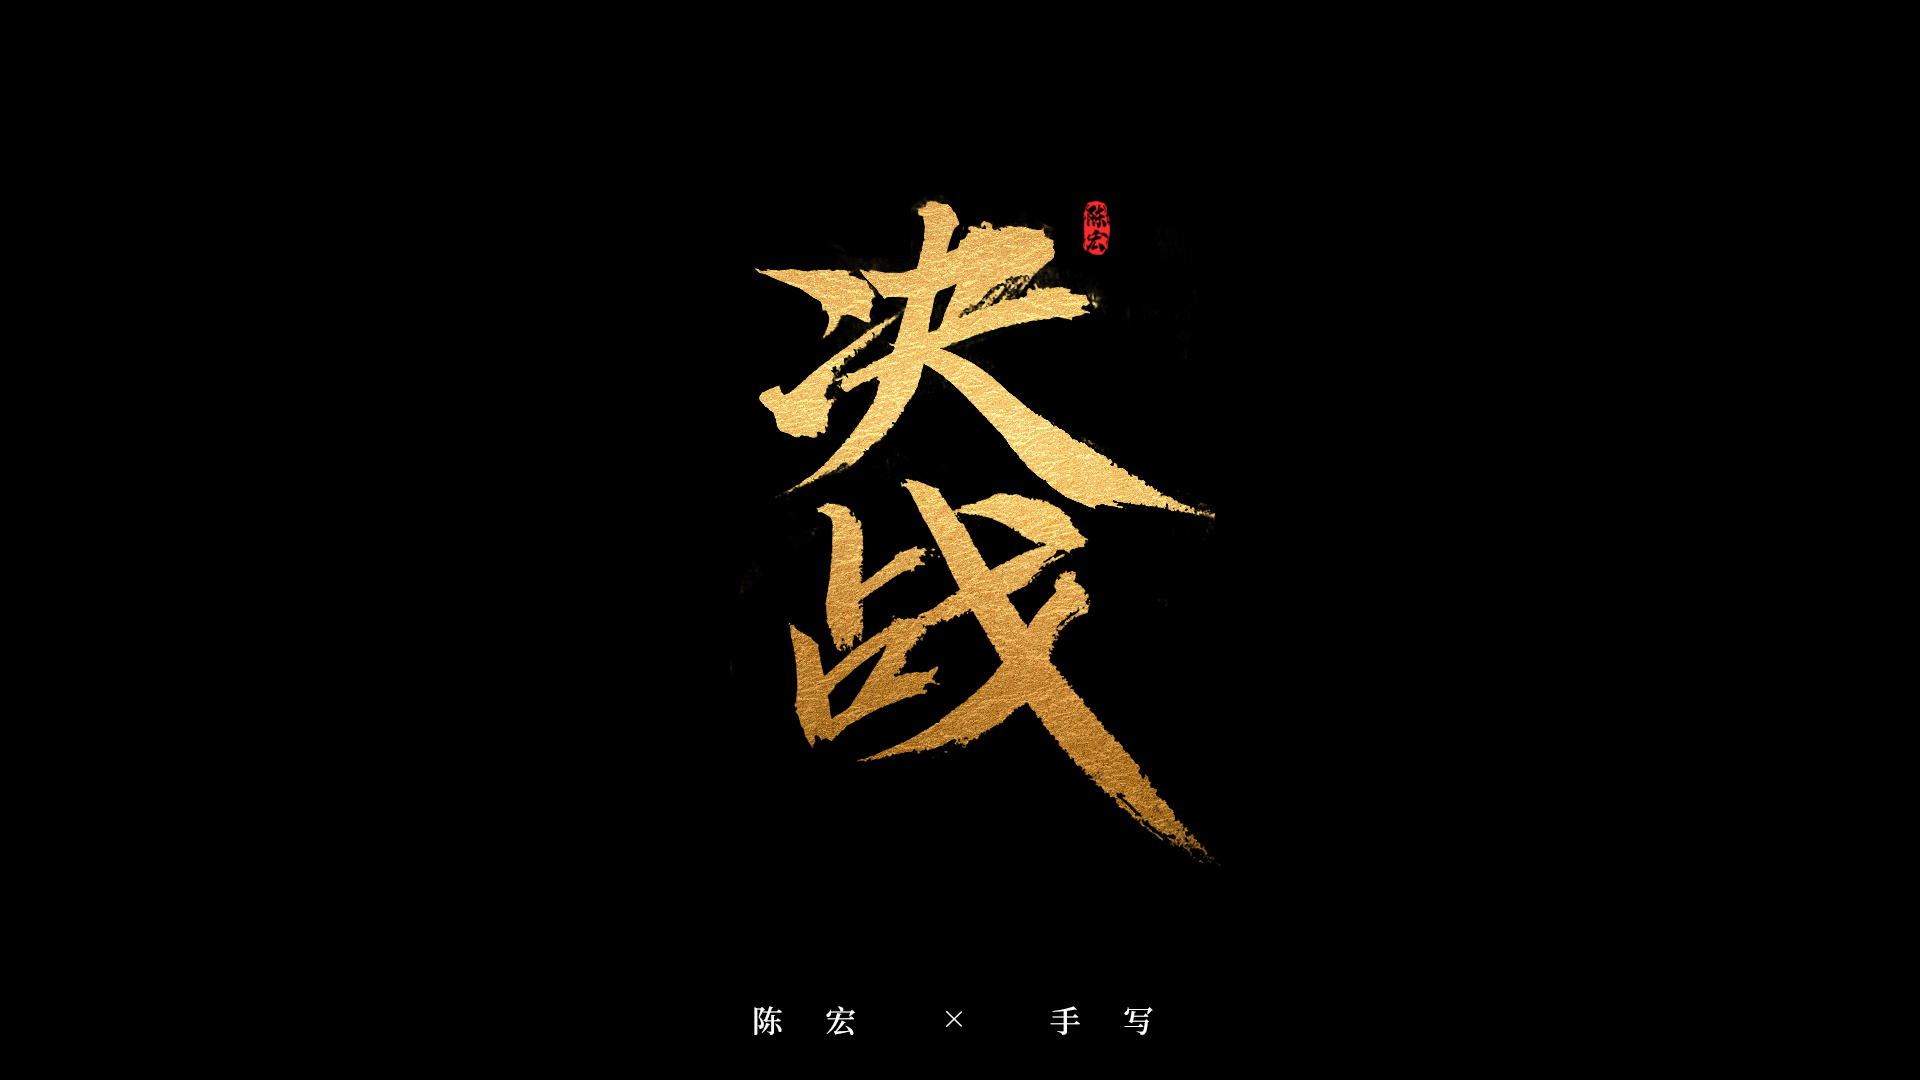 18P Collection of the latest Chinese font design schemes in 2021 #.434